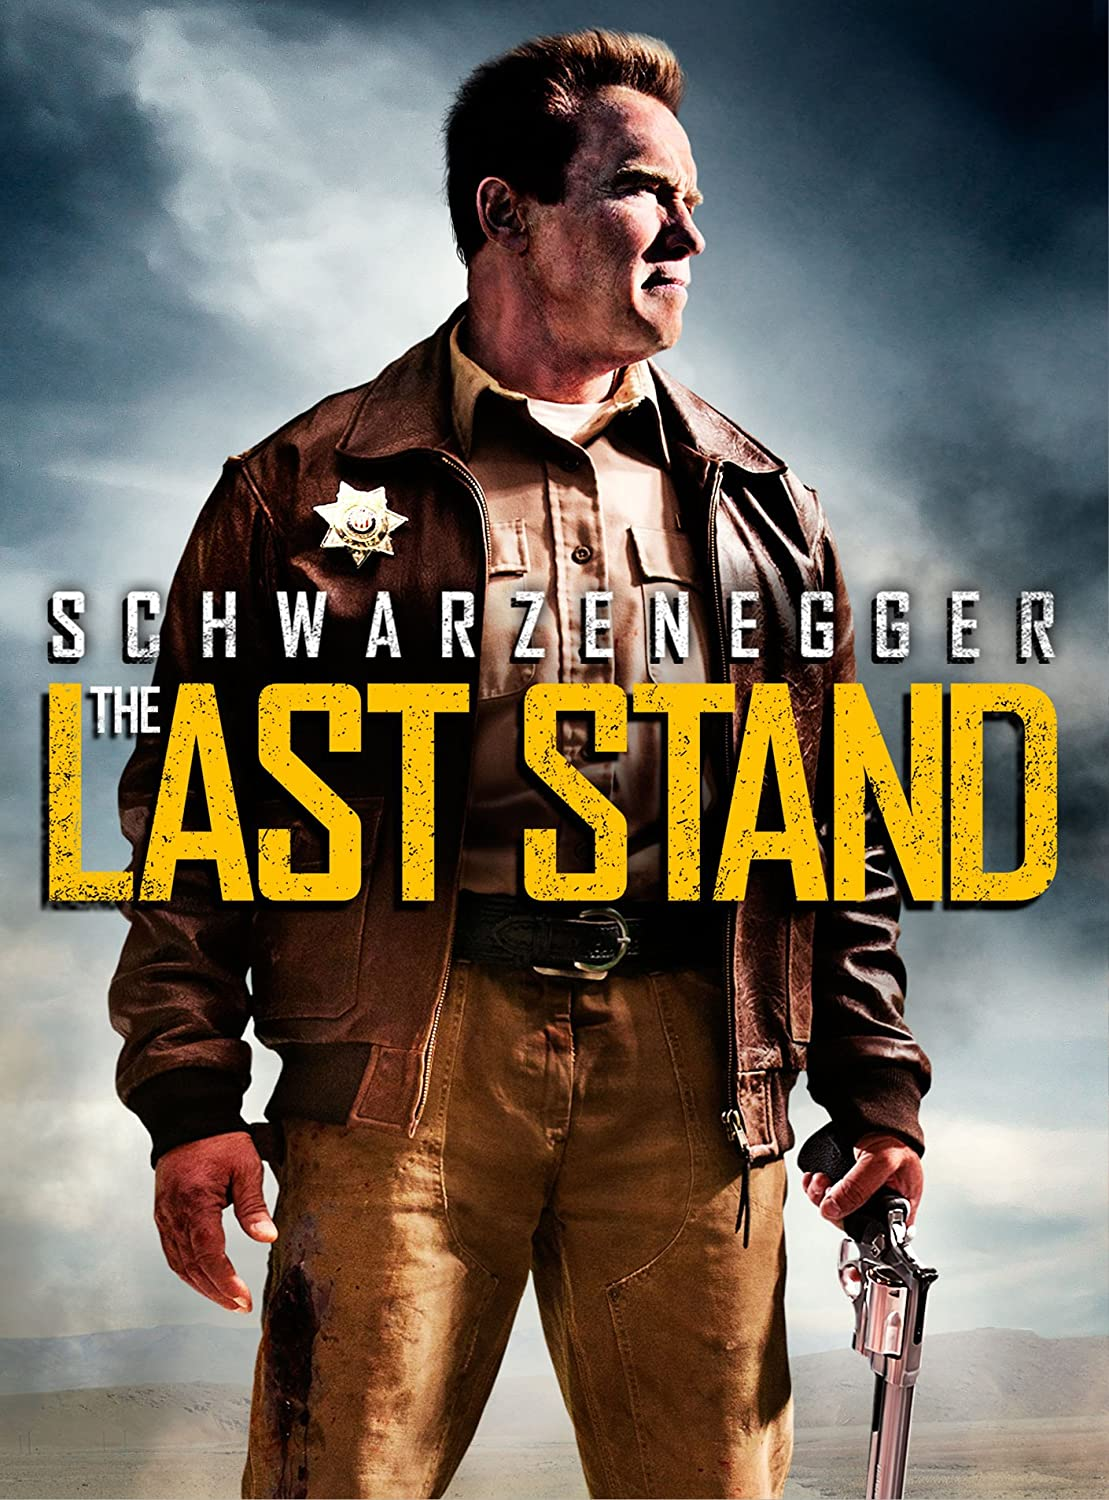 Amazon.in: Buy The Last Stand - DVD - Lionsgate Films | 2013 | 107 ...